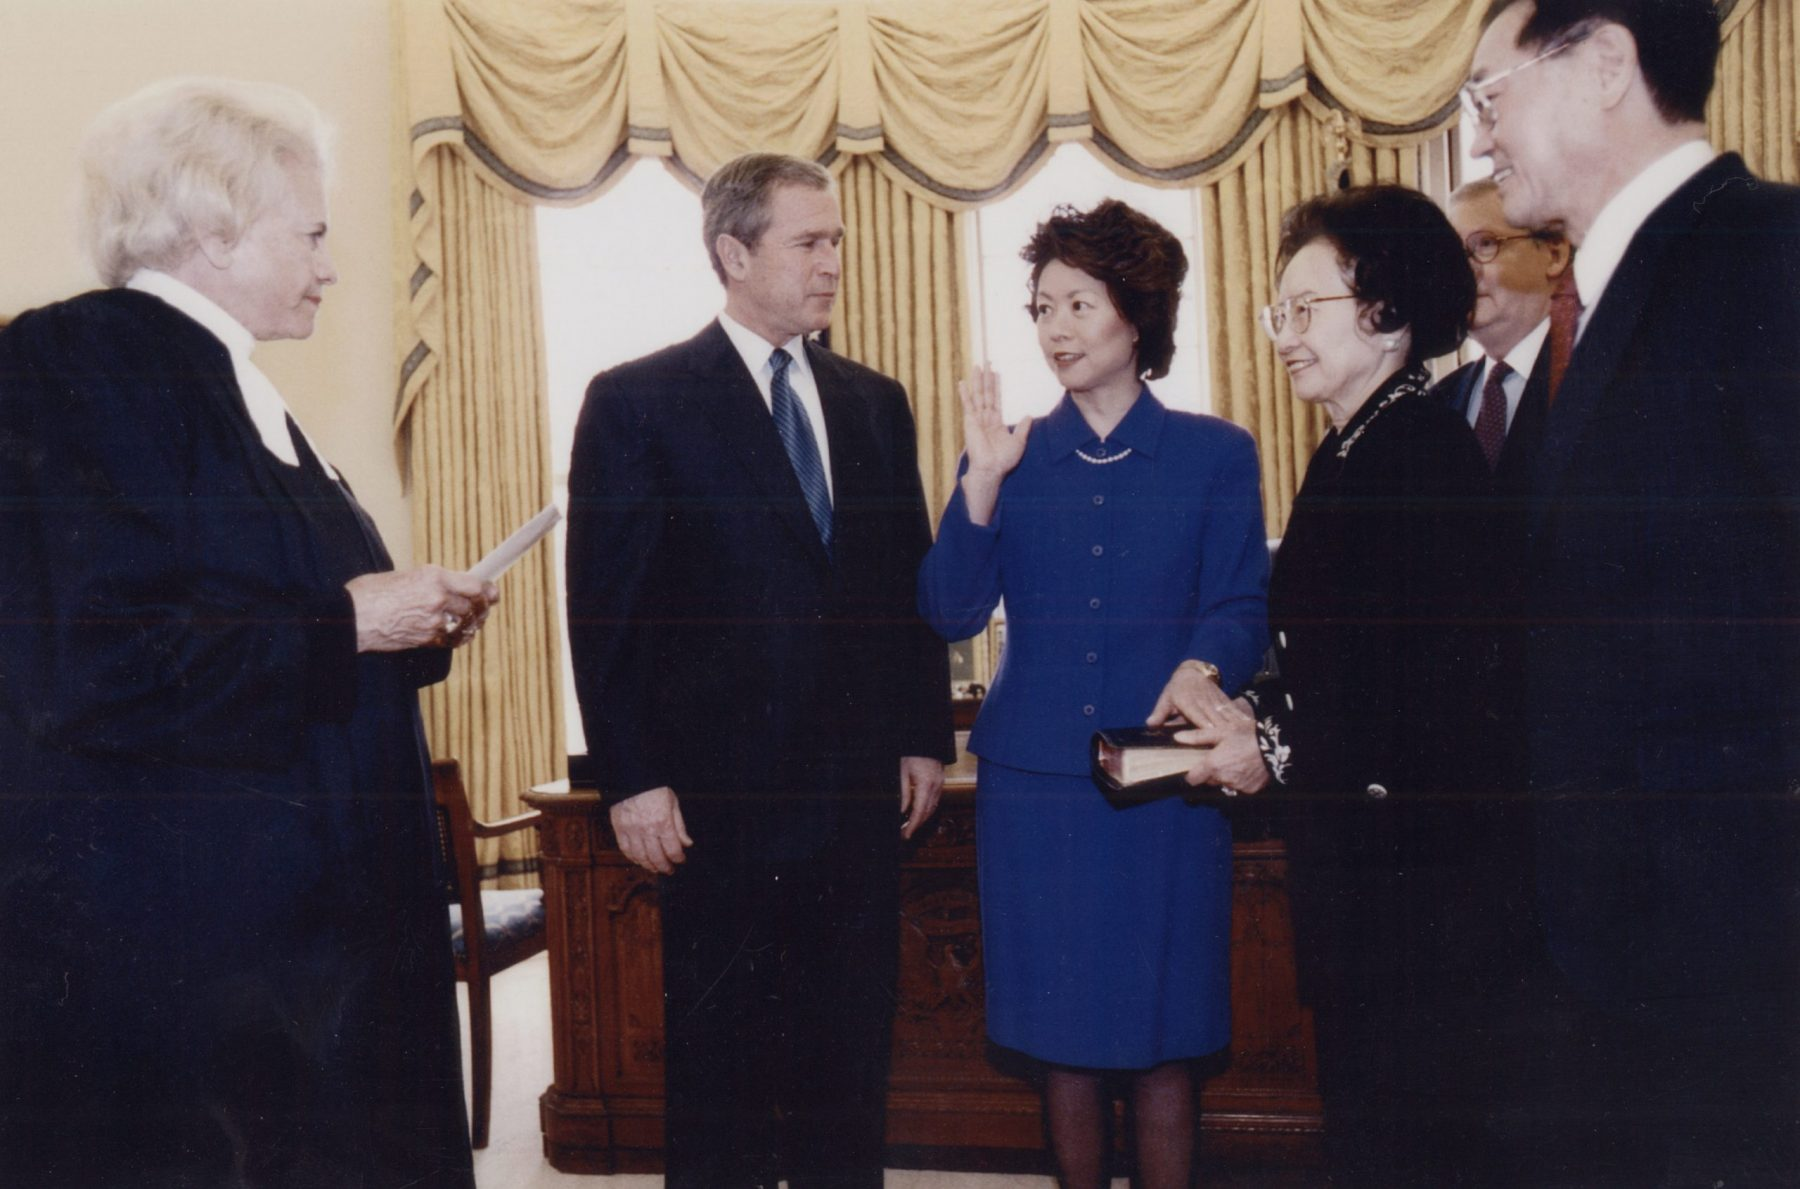 In the Oval Office. Justice Sandra Day O'Connor swearing in Elaine Chao as Secretary of Labor with President George W. Bush; parents, Dr. James S. C. Chao, Mrs. Ruth Mulan Chu Chao; and husband Mitch McConnell looking on.